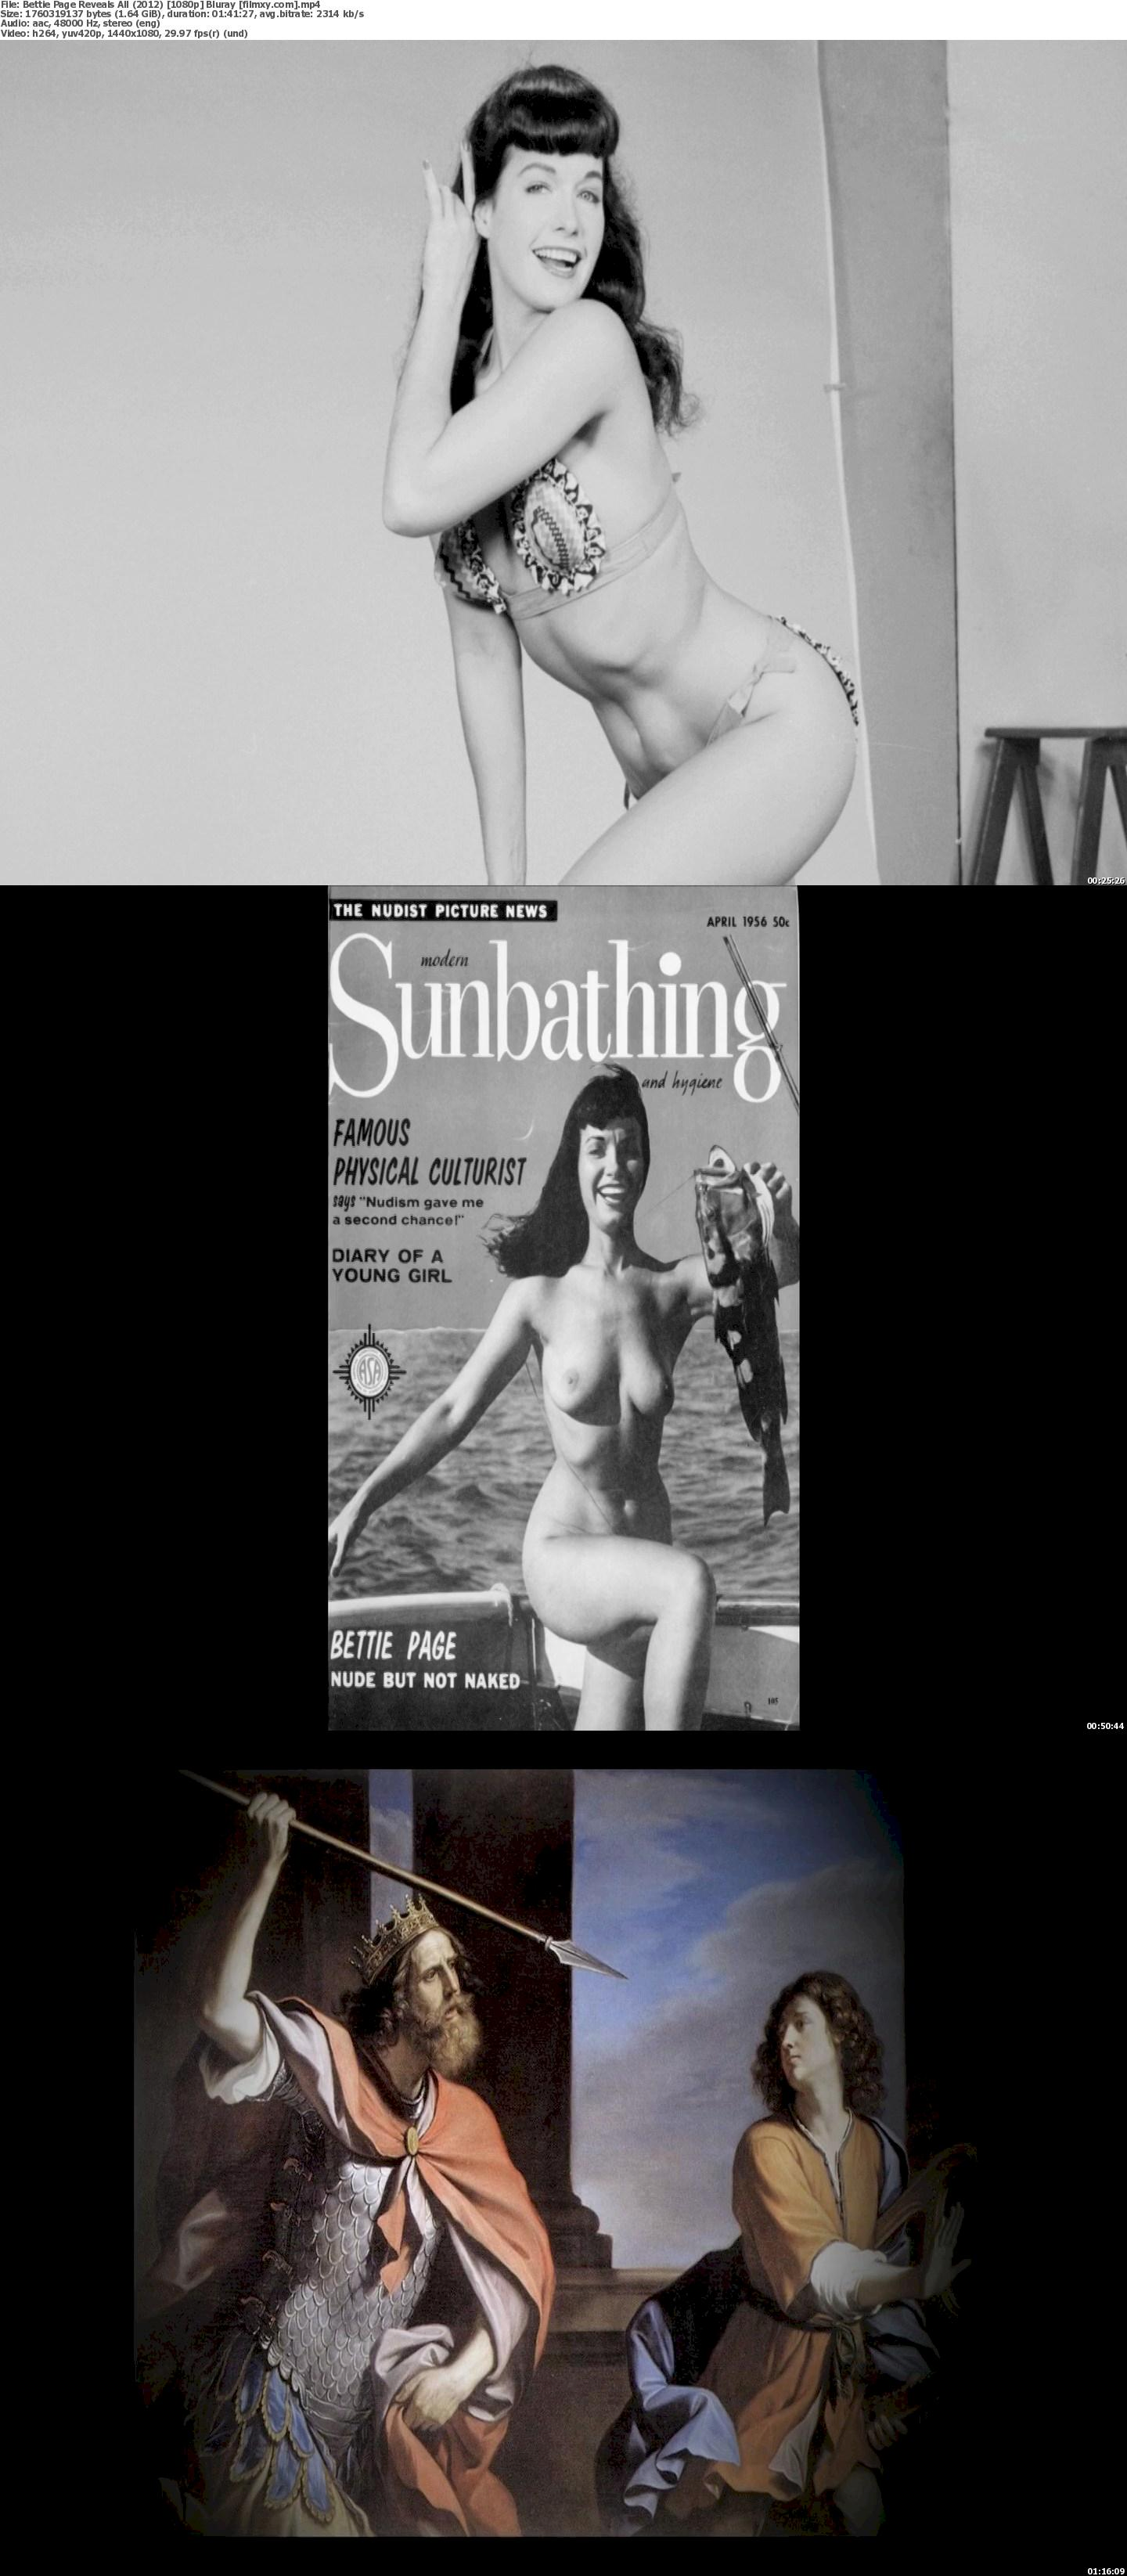 Bettie Page Reveals All (2012) [720p & 1080p] Bluray Free Movie Watch Online & Download 1080p Screenshot